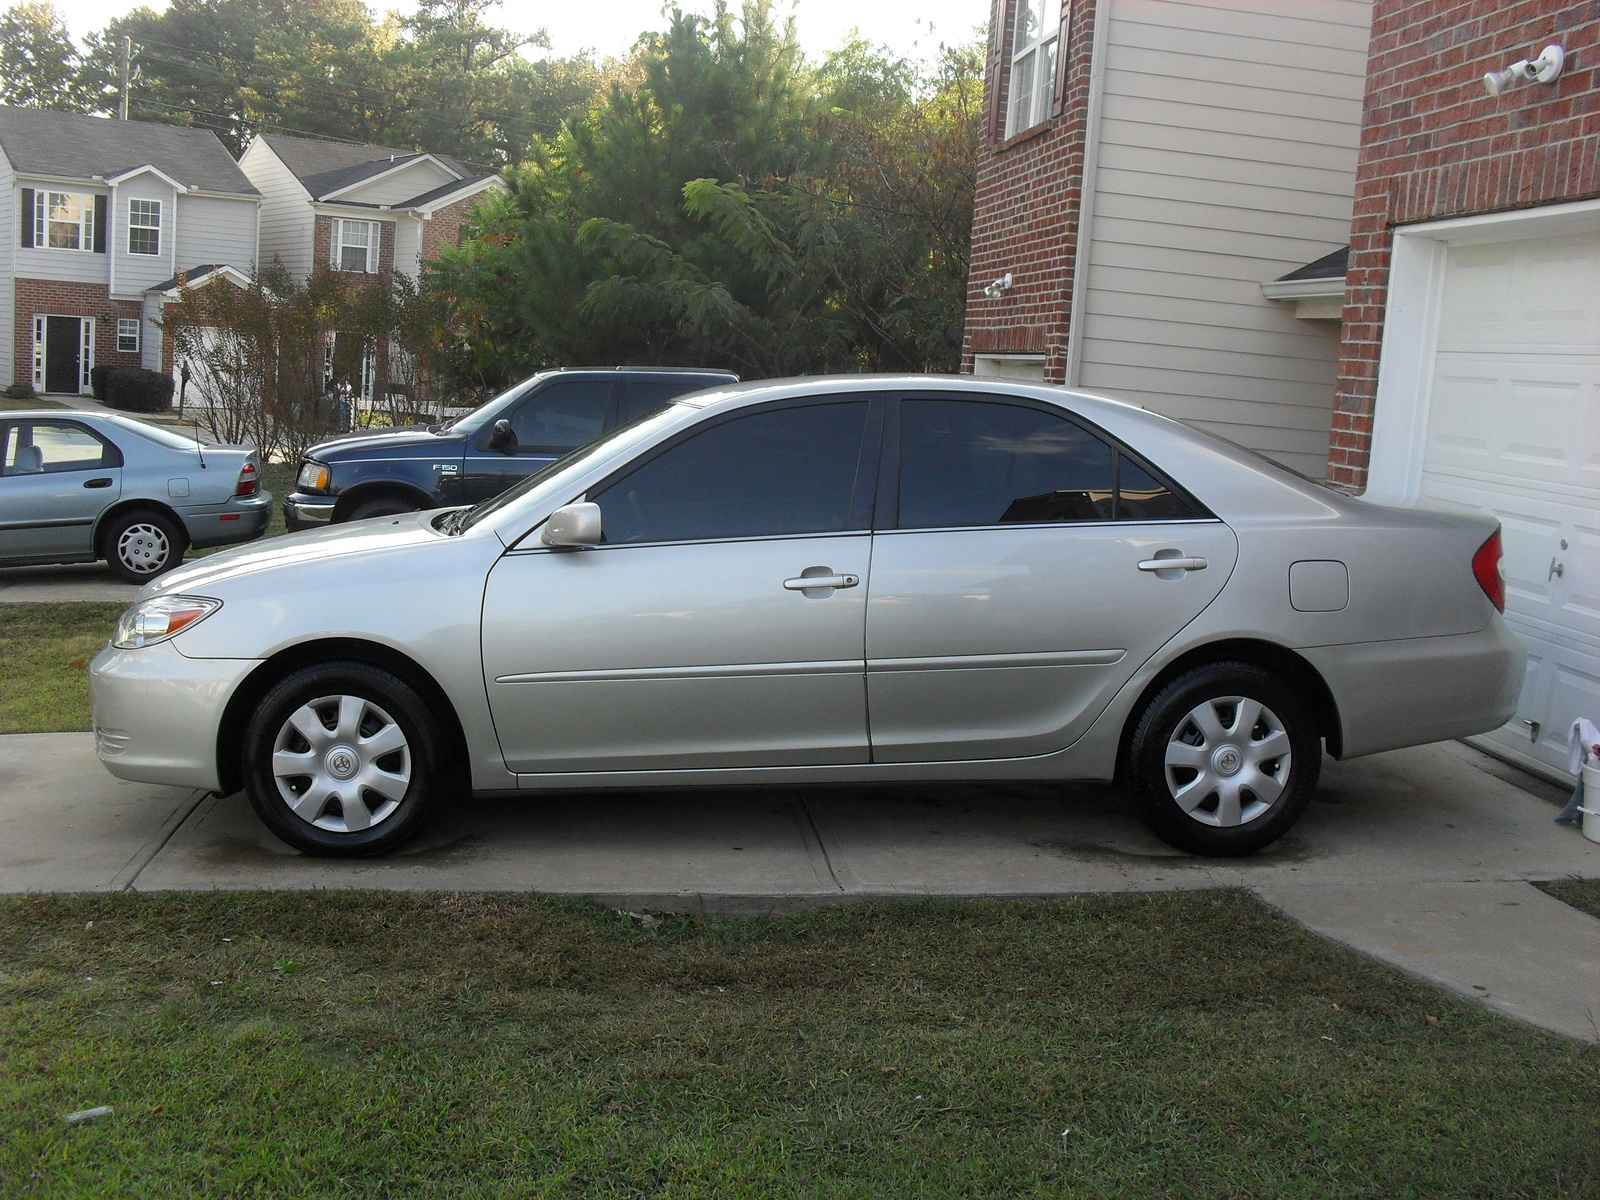 1996 Toyota Camry Pictures C4054 pi36573607 besides Watch also 2003 Toyota Camry Overview C3576 additionally Exterior 62198147 together with Dashboard. on 1992 toyota camry se v6